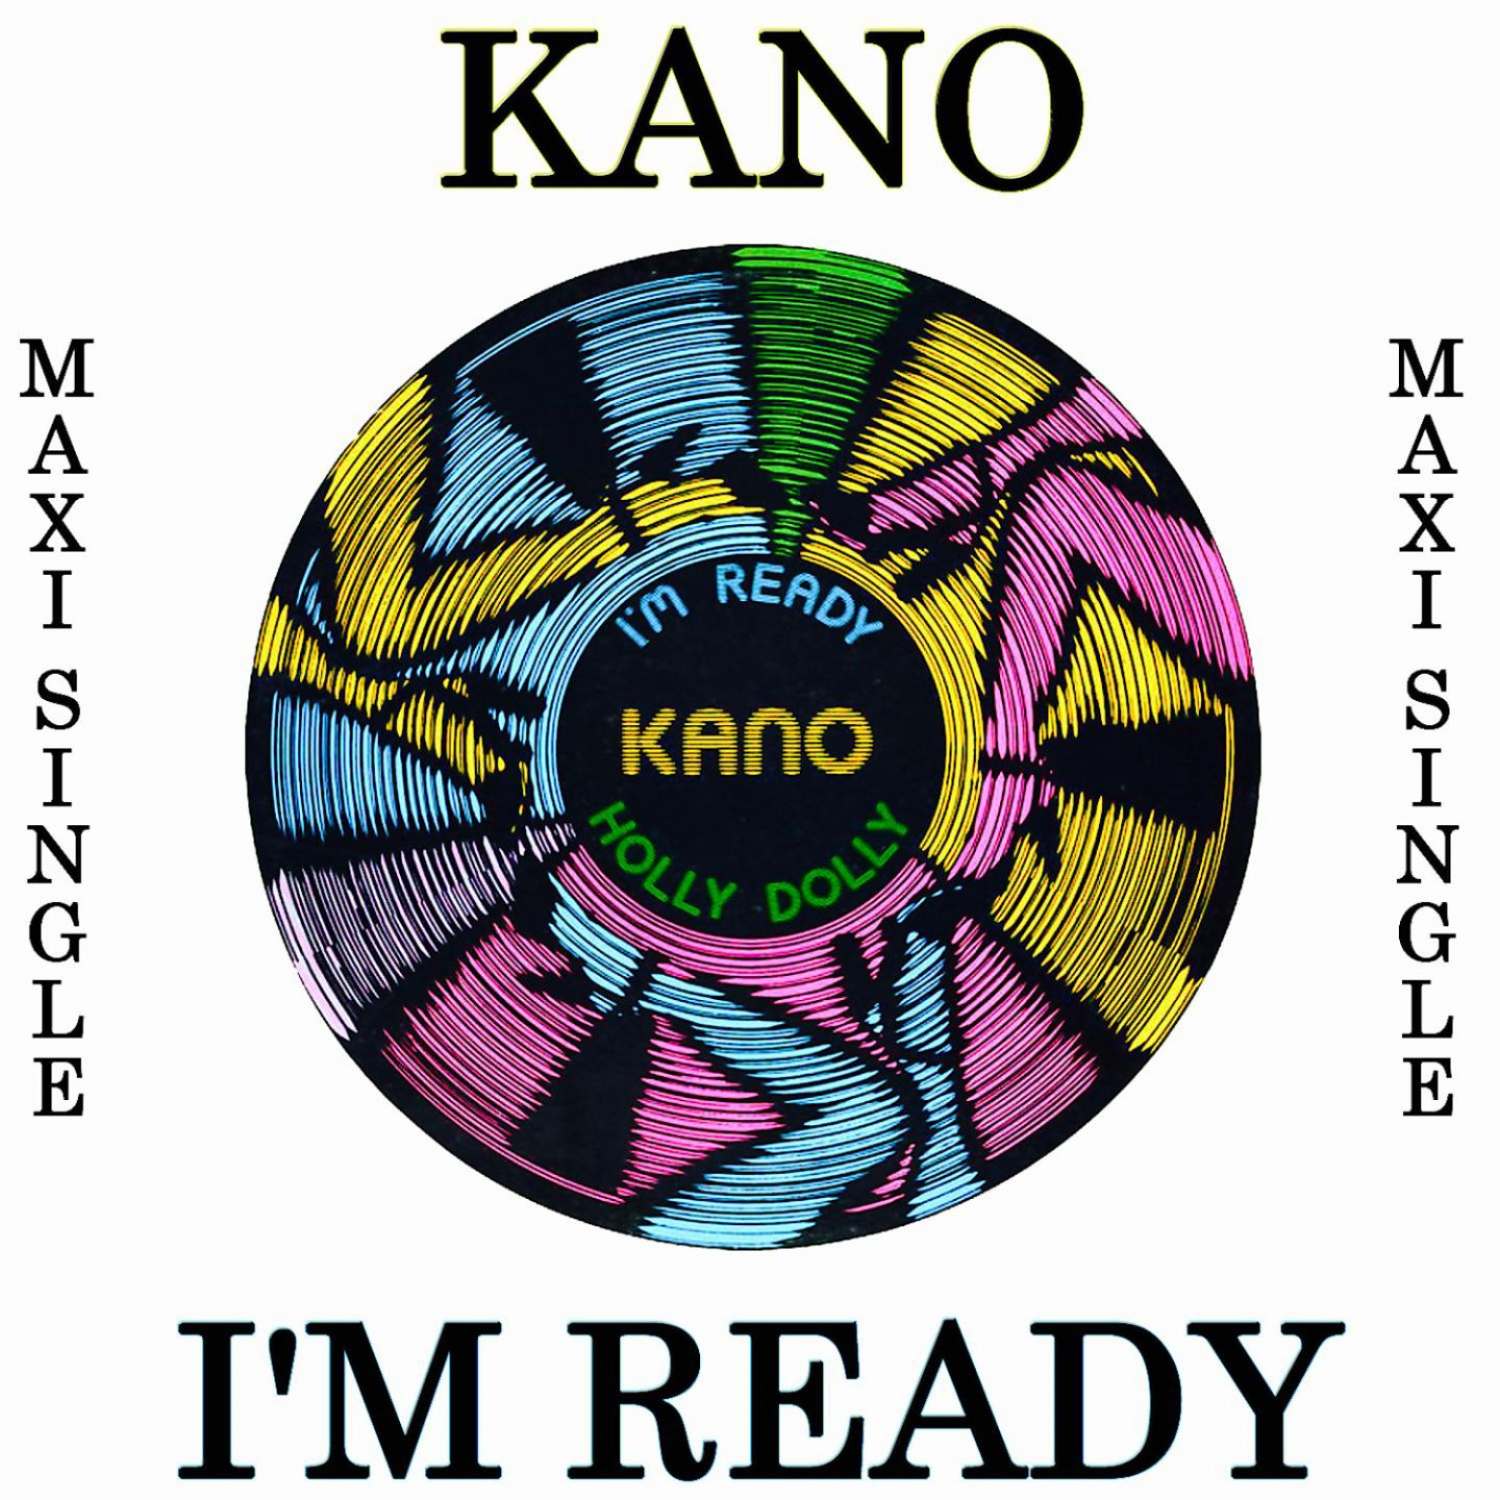 Kano - Holly Dolly (Extended Version)